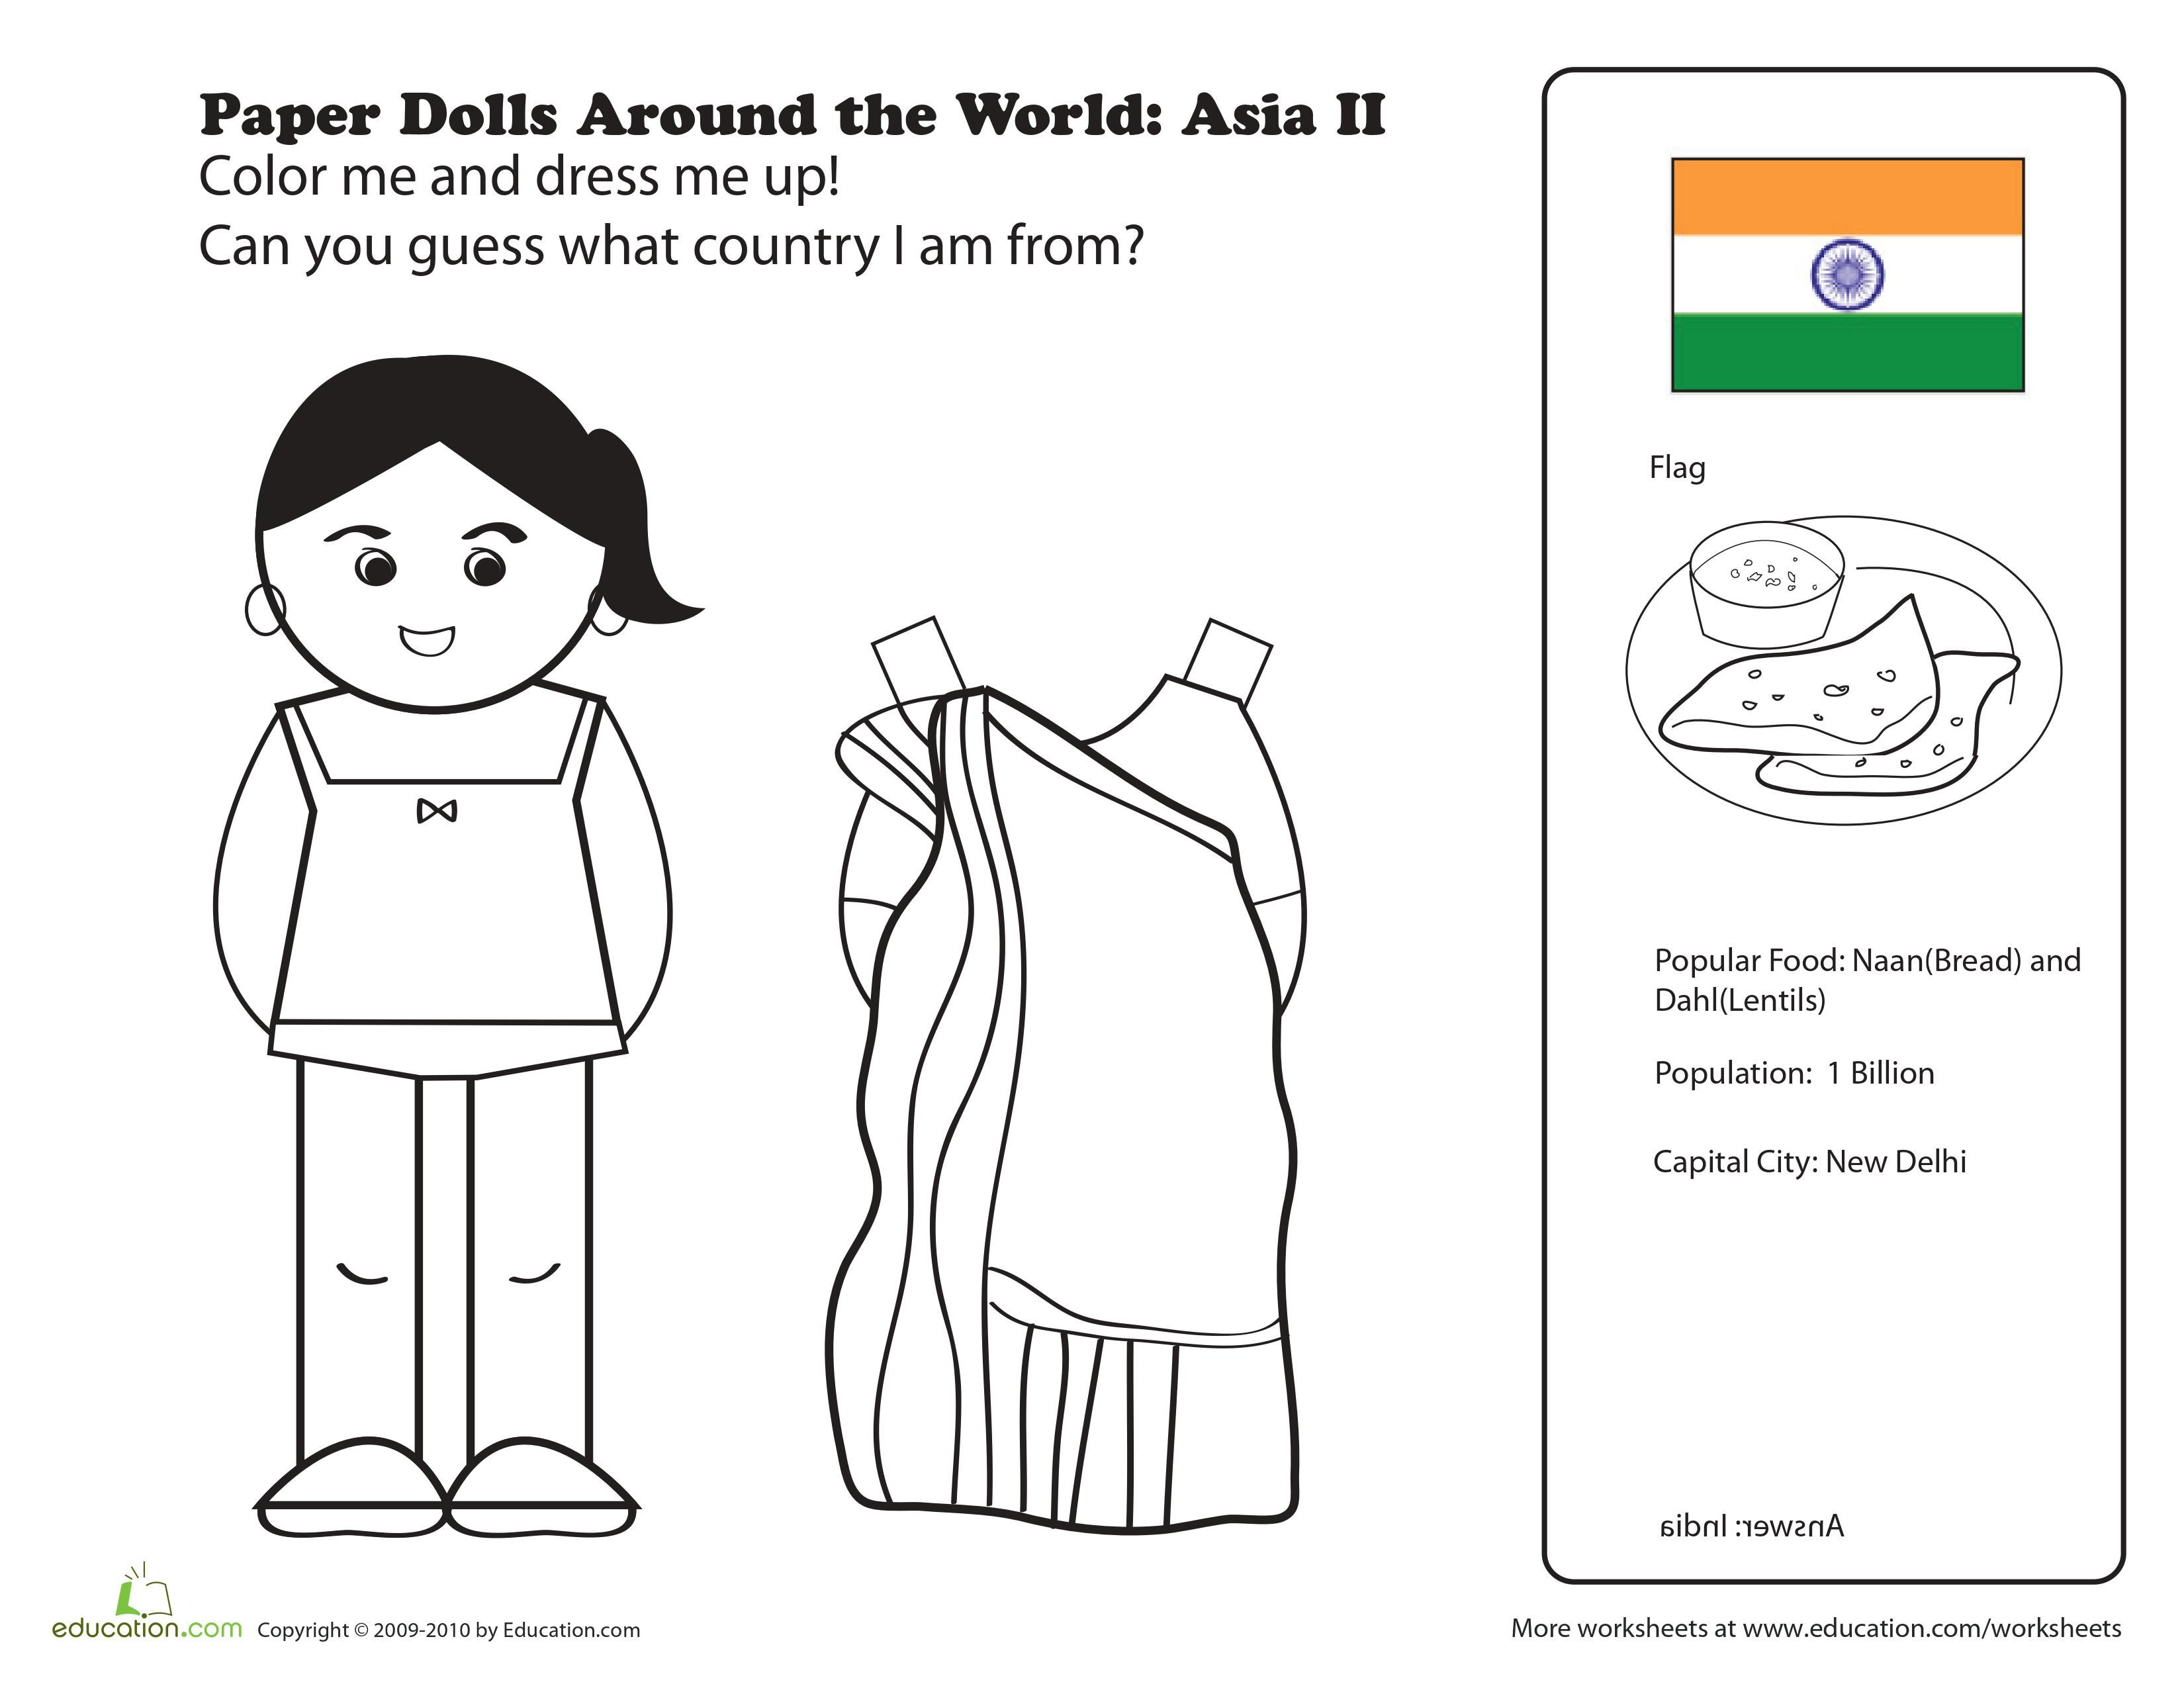 medium resolution of Pin by amy on LA INDIA   Paper dolls